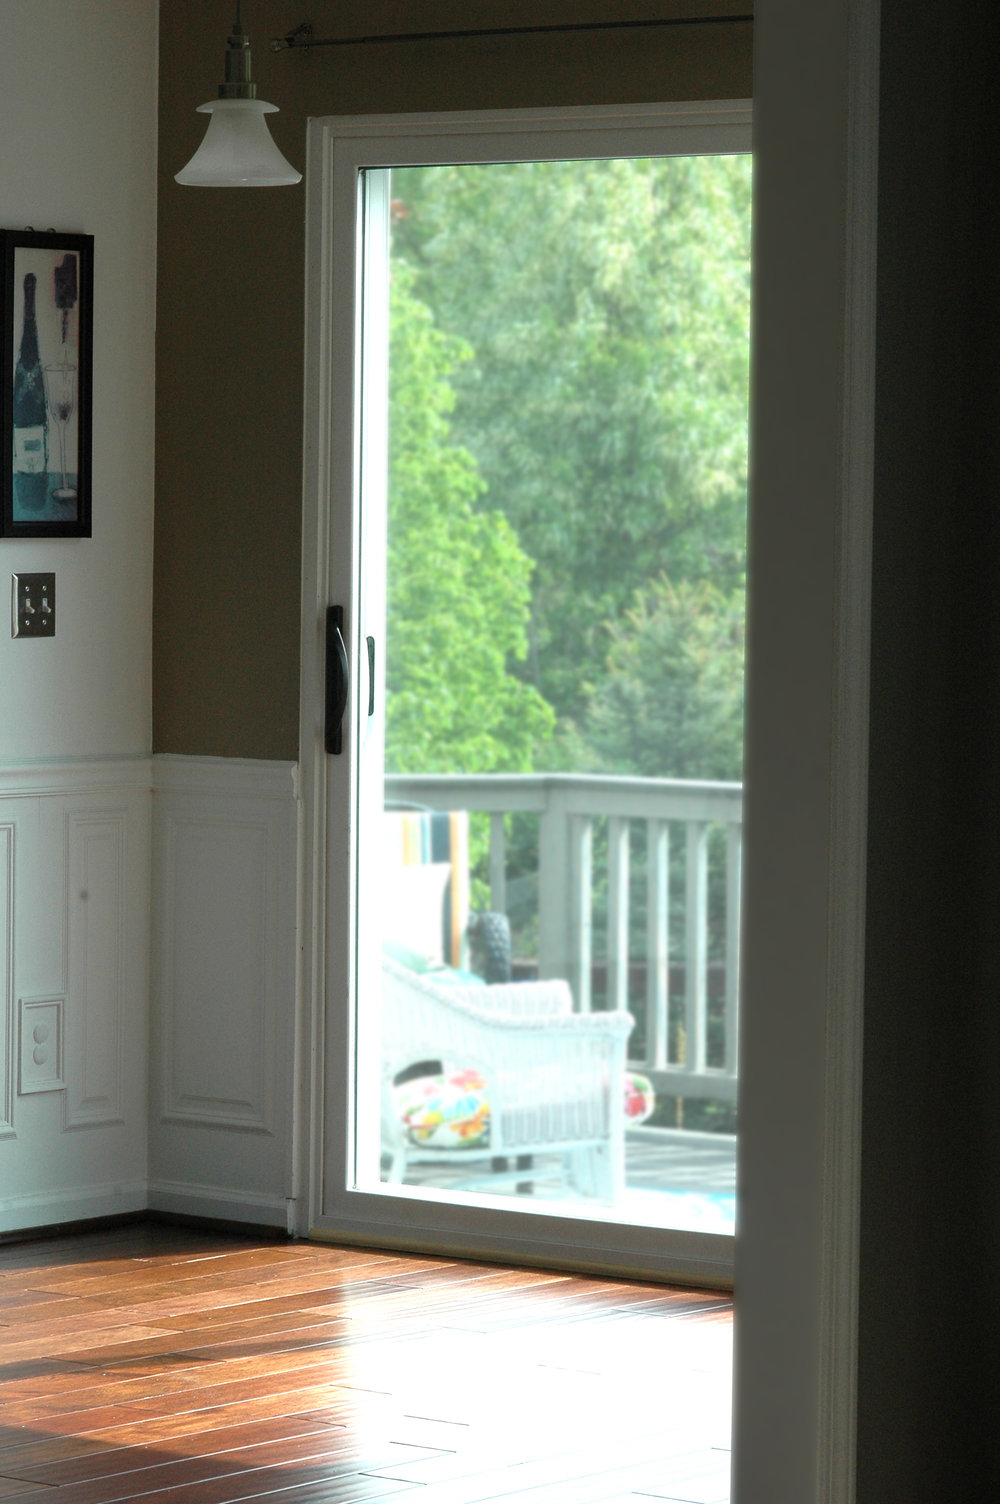 Sunlight can do more than brighten your day. Ask us how new windows might benefit your whole family.